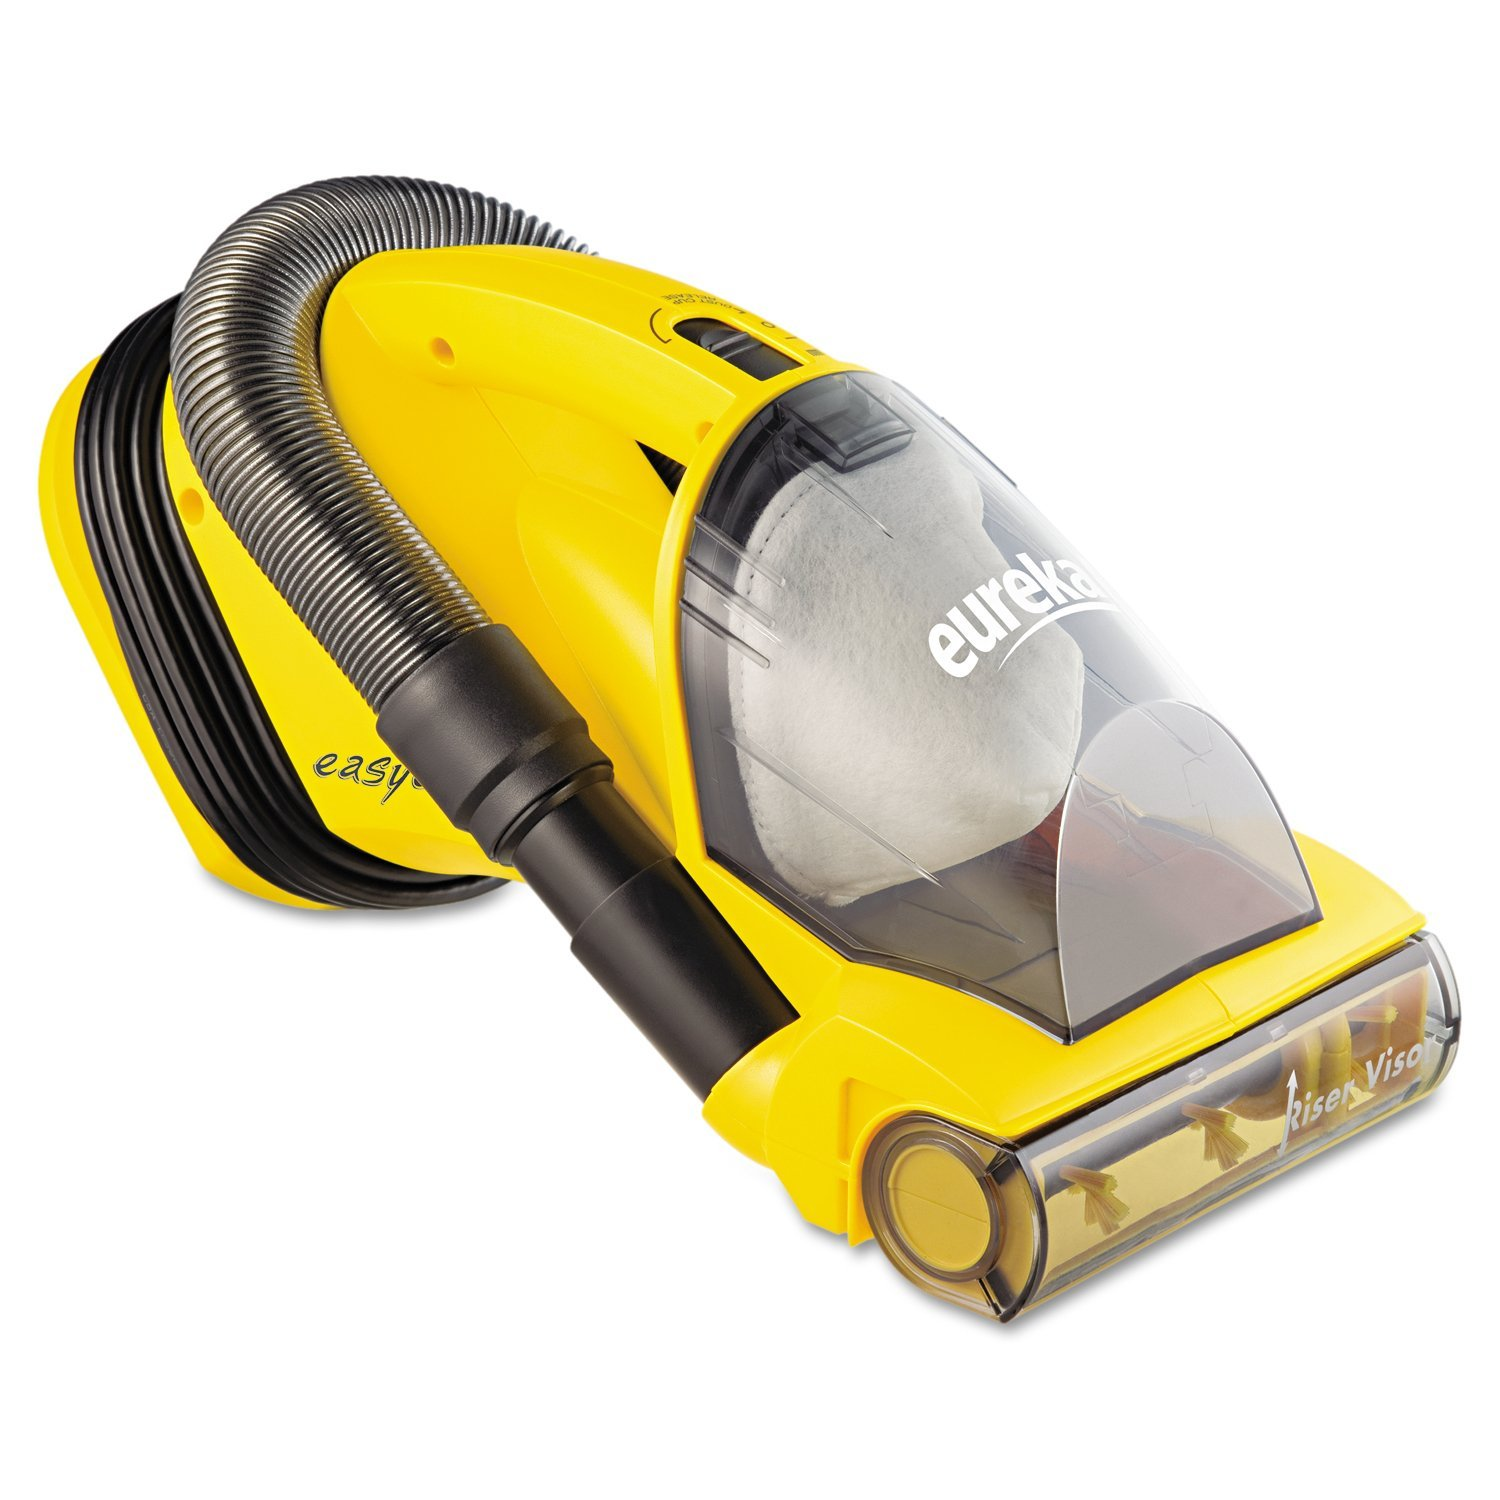 Eureka Easy Clean Hand Vac – Handheld Car Vacuum